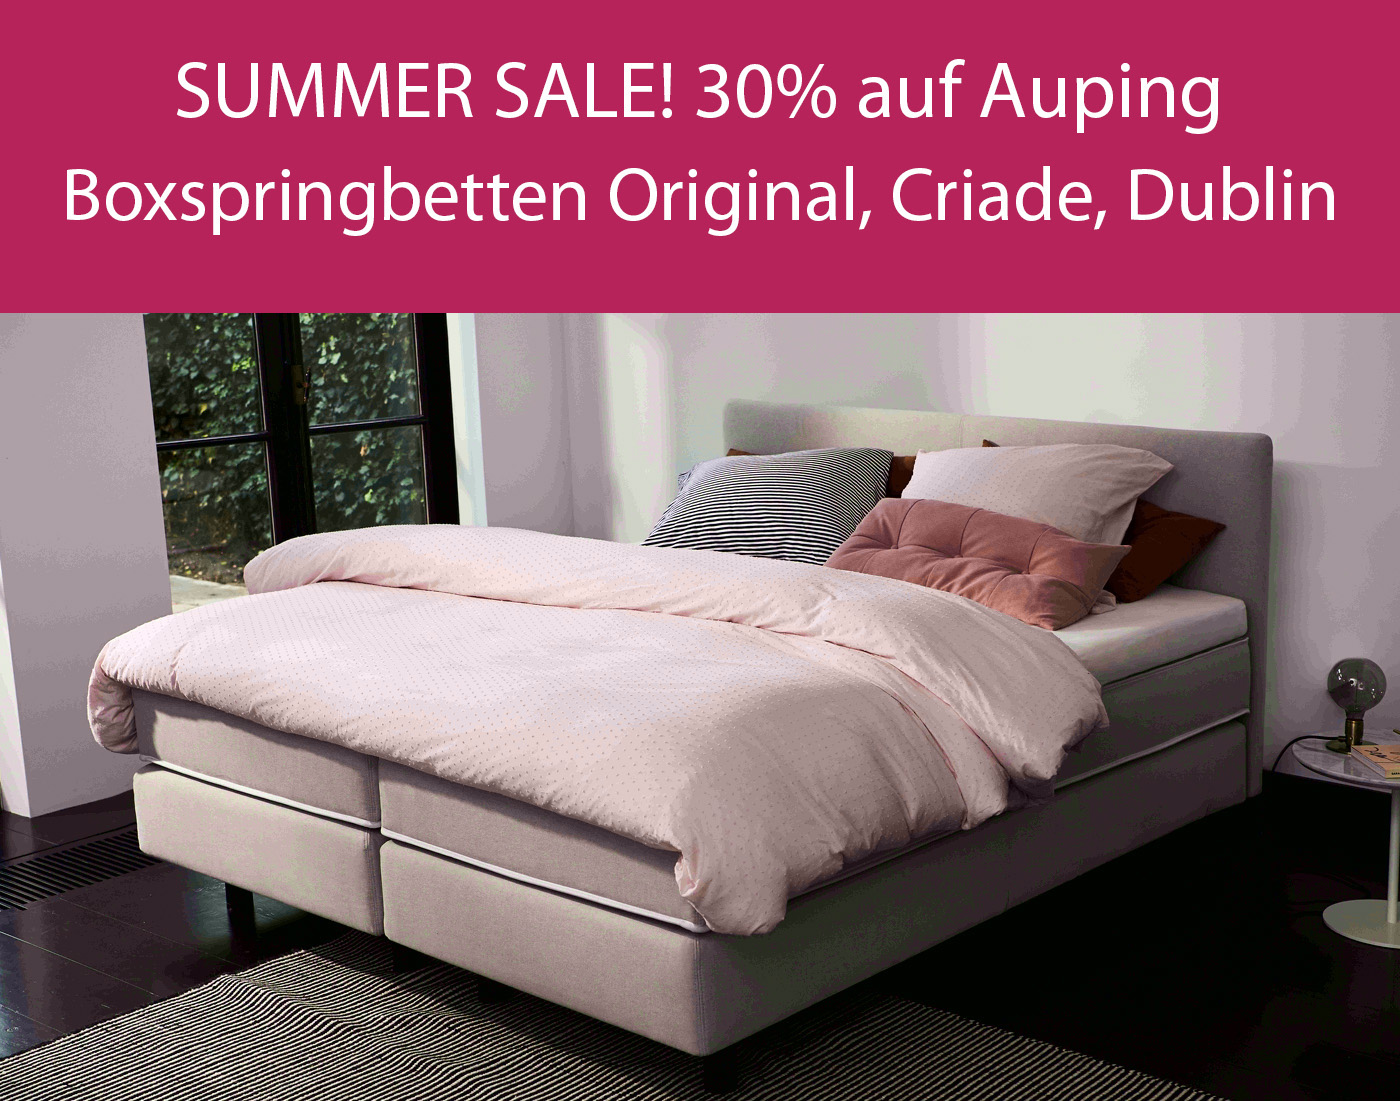 Summer Sale - Auping Boxspringbetten